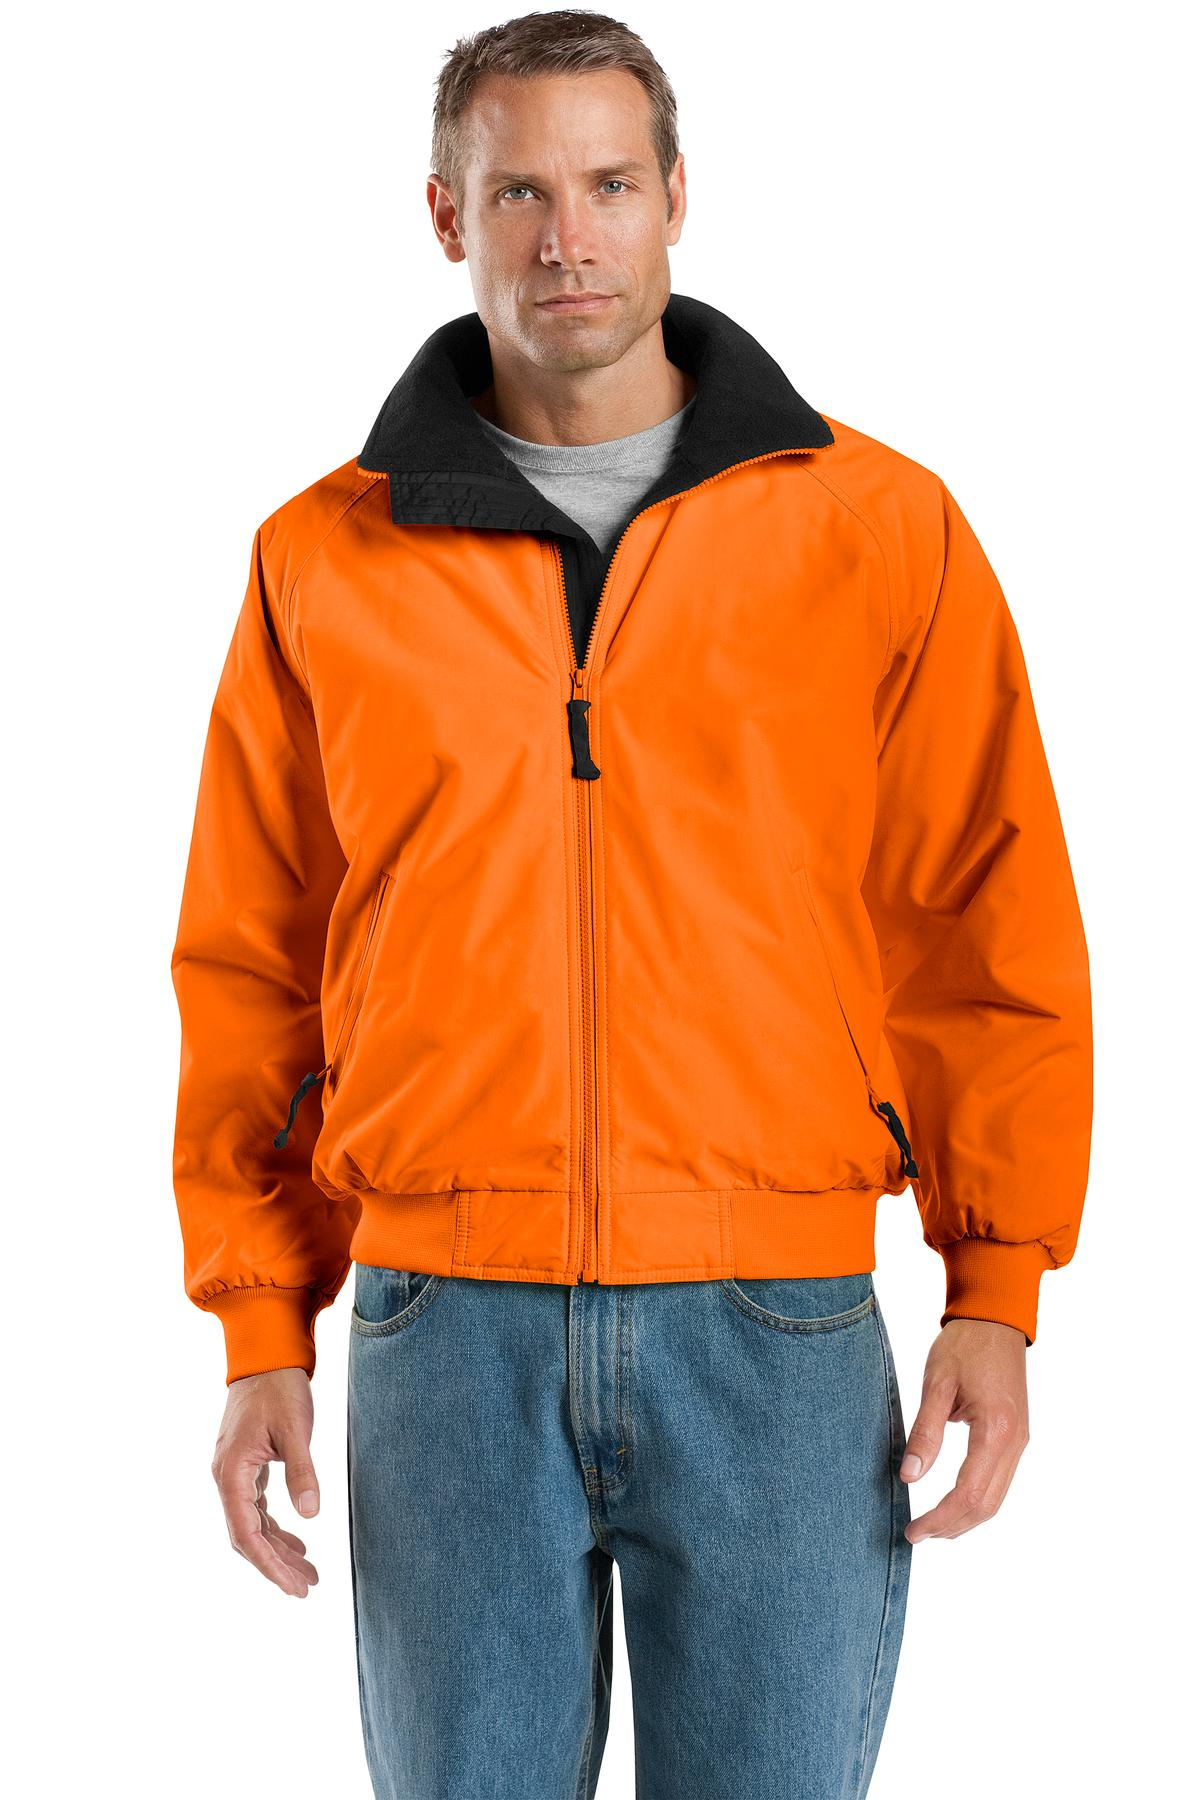 Outerwear-Insulated-Jackets-8